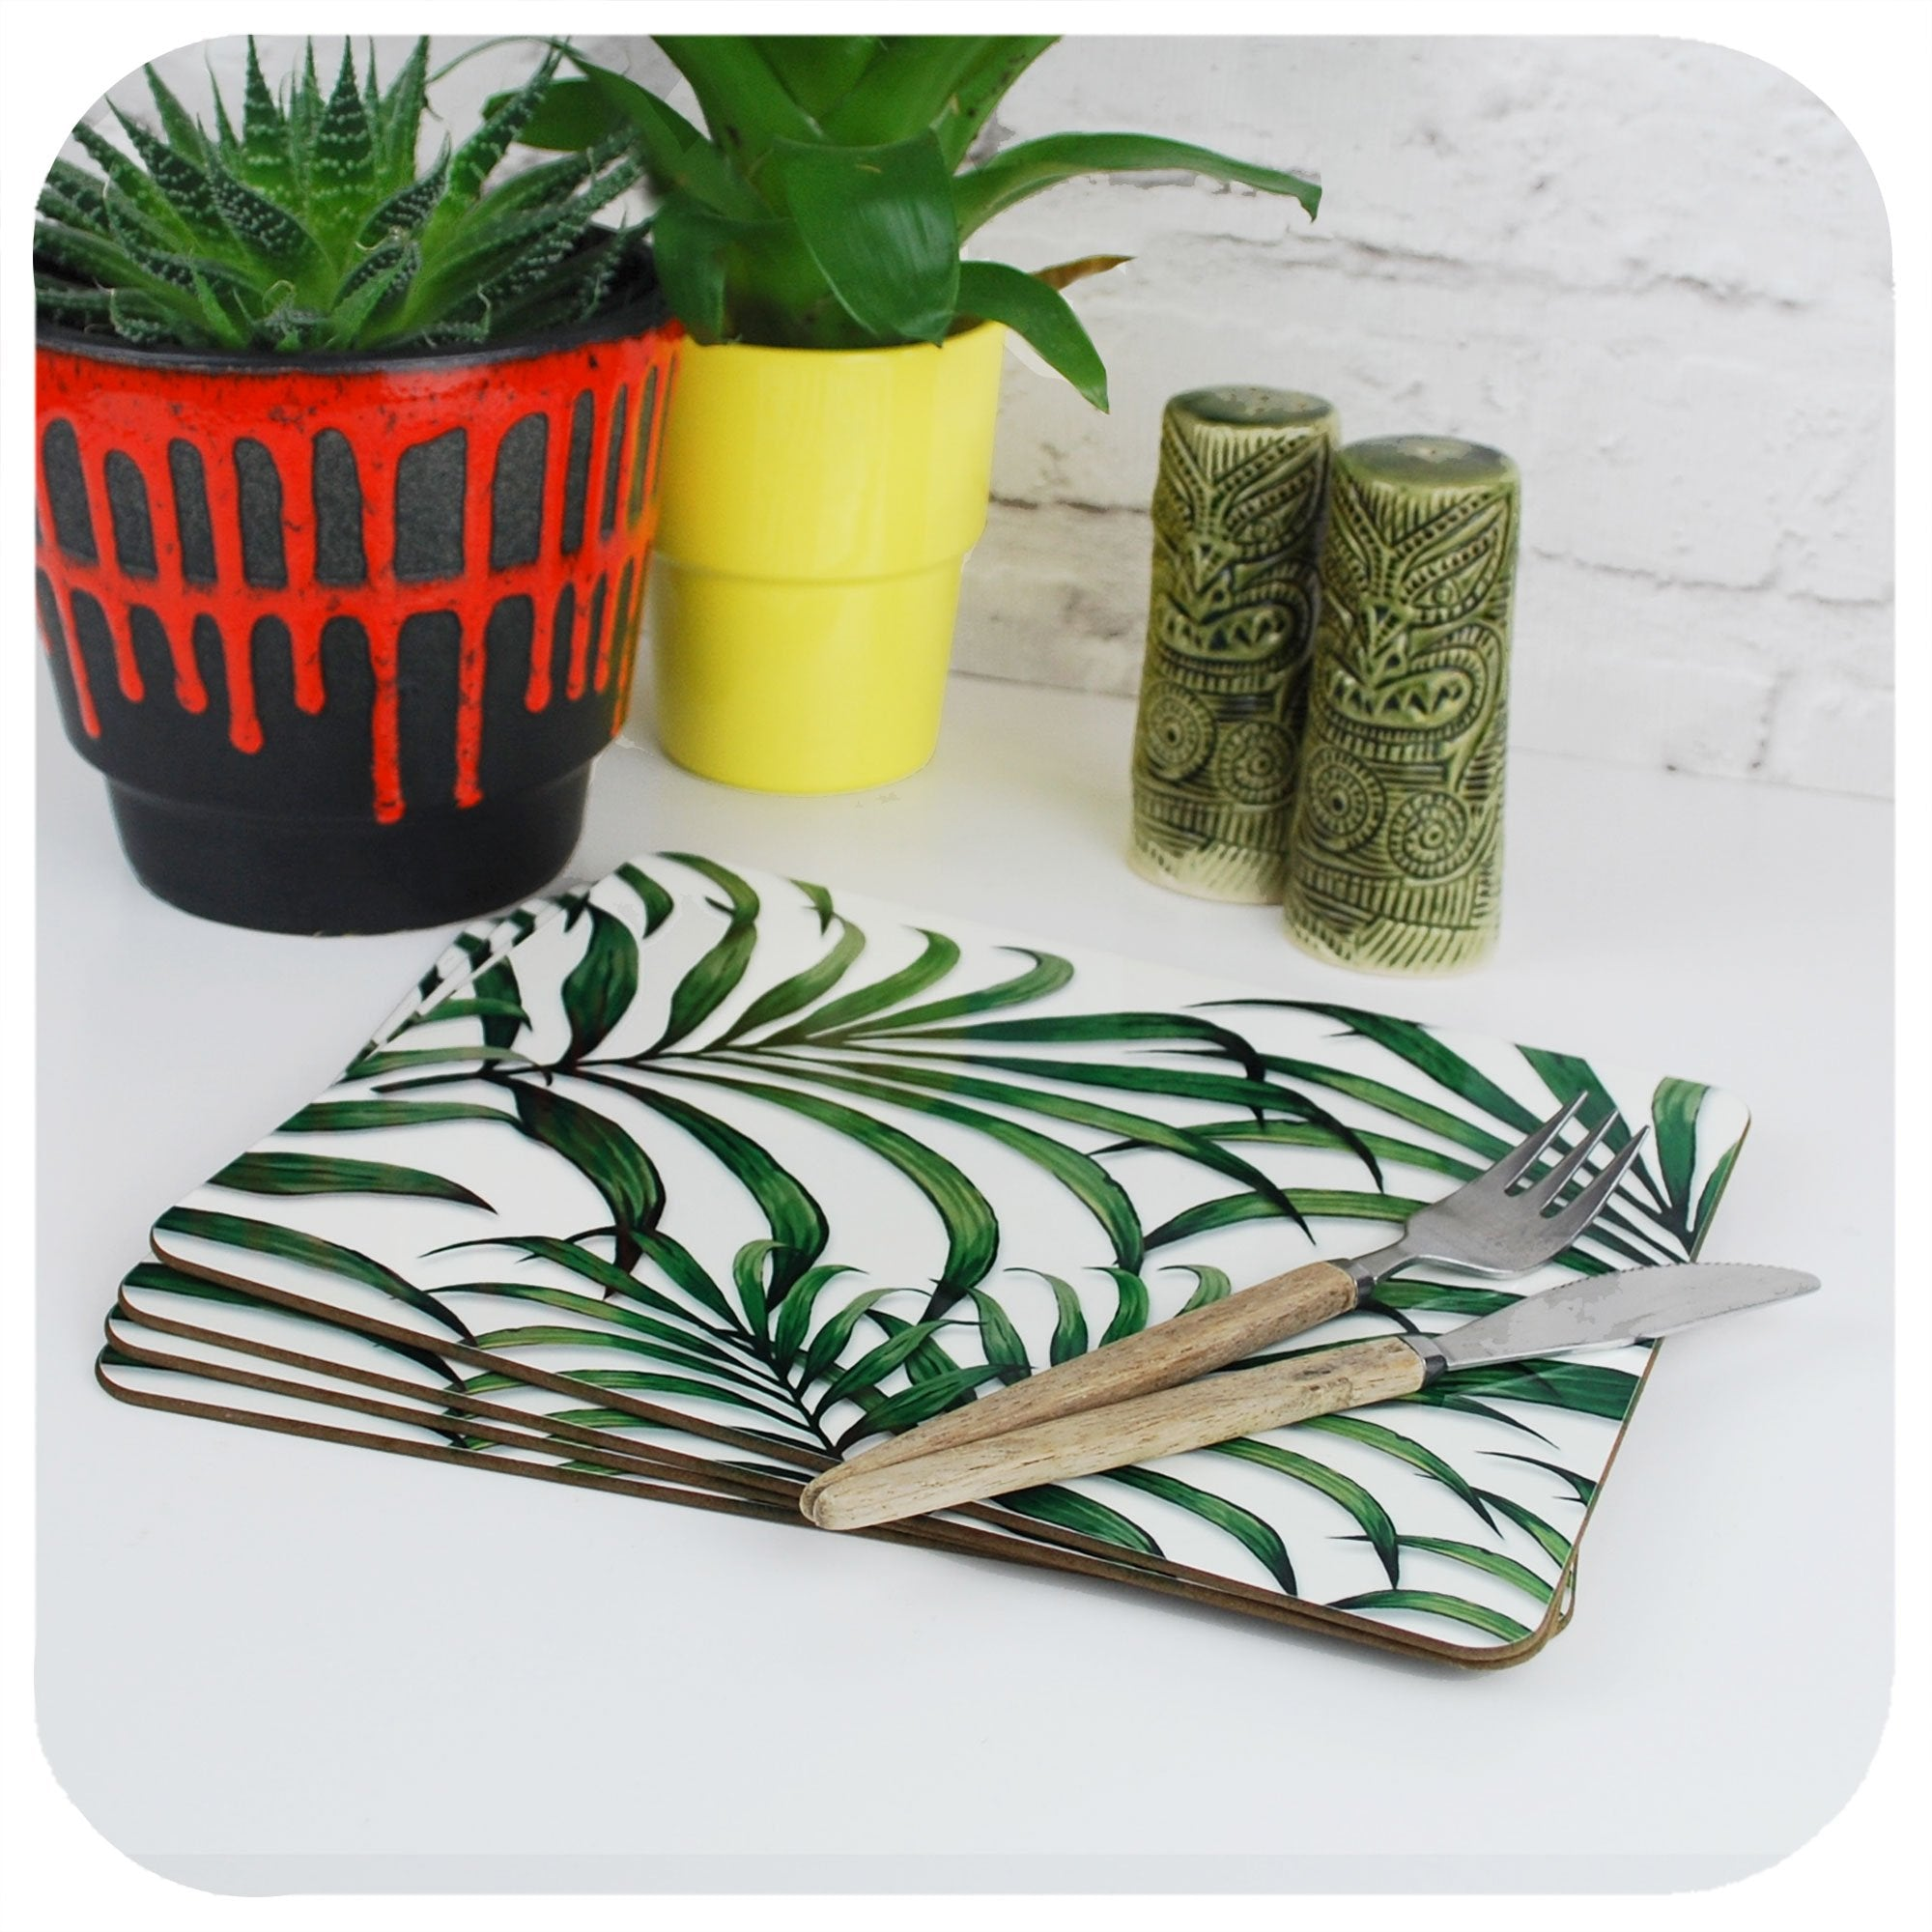 Palm Leaf Print Placemats, set of 4 on a table with tropical plants and Tiki cruet set | The Inkabilly Emporium